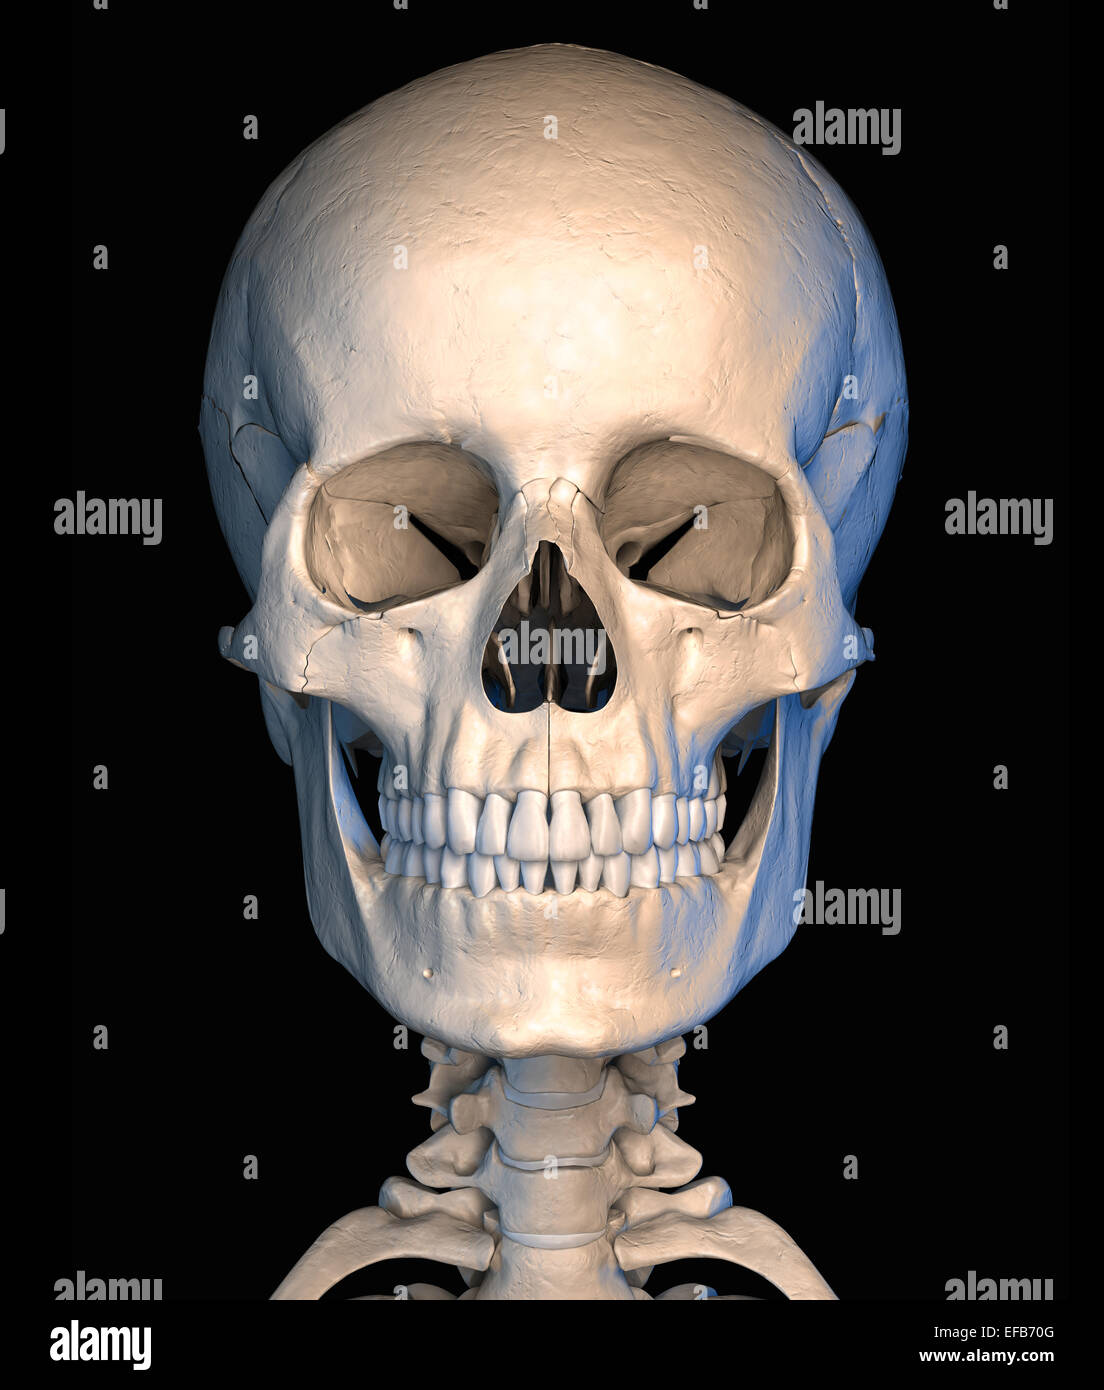 Very detailed and scientifically correct, human skull, front view, on black background. Anatomy image. Clipping - Stock Image